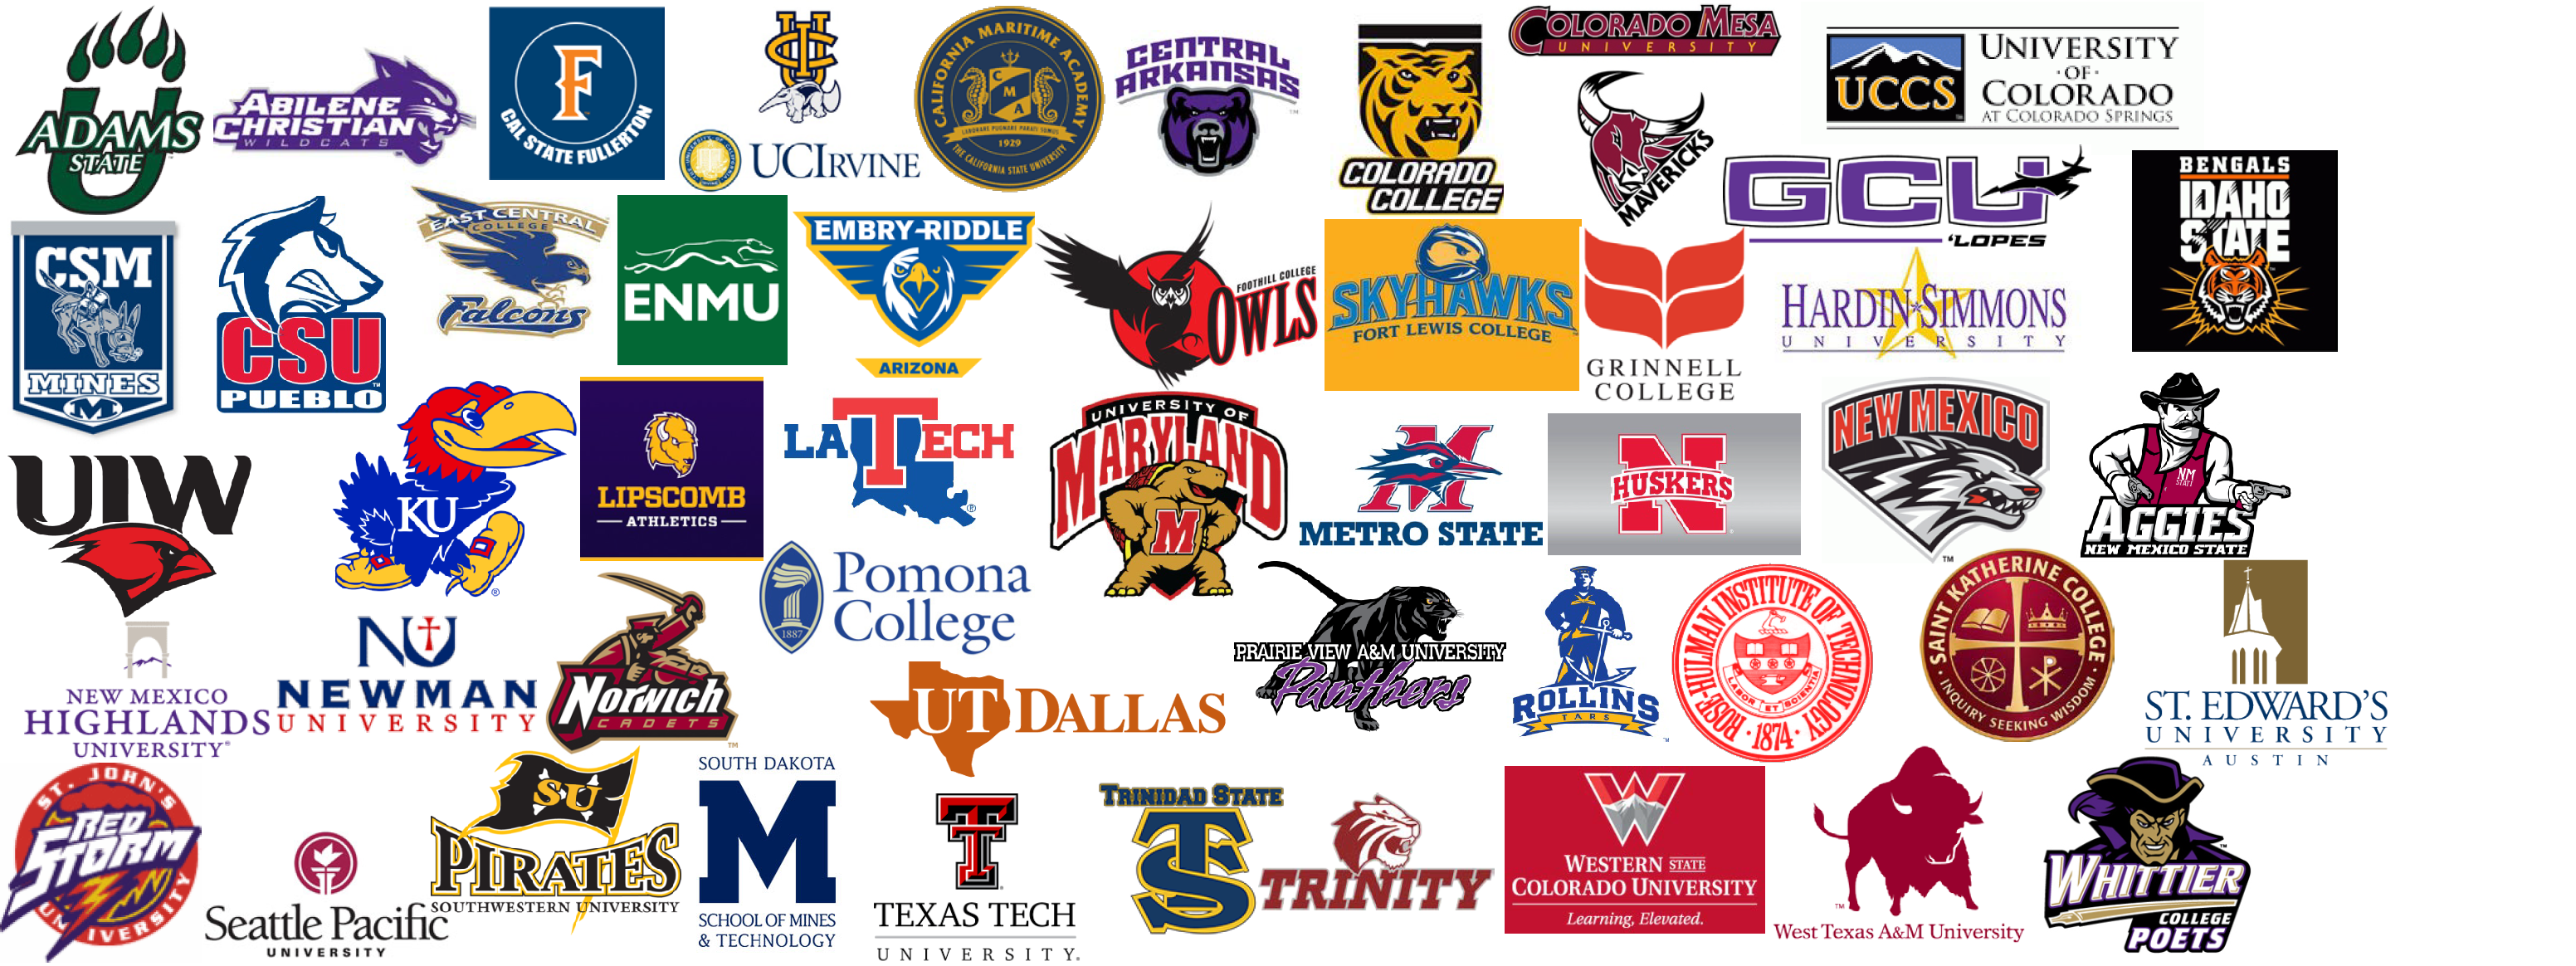 81 Rio Rapids Alumni Make Their Mark in College Soccer